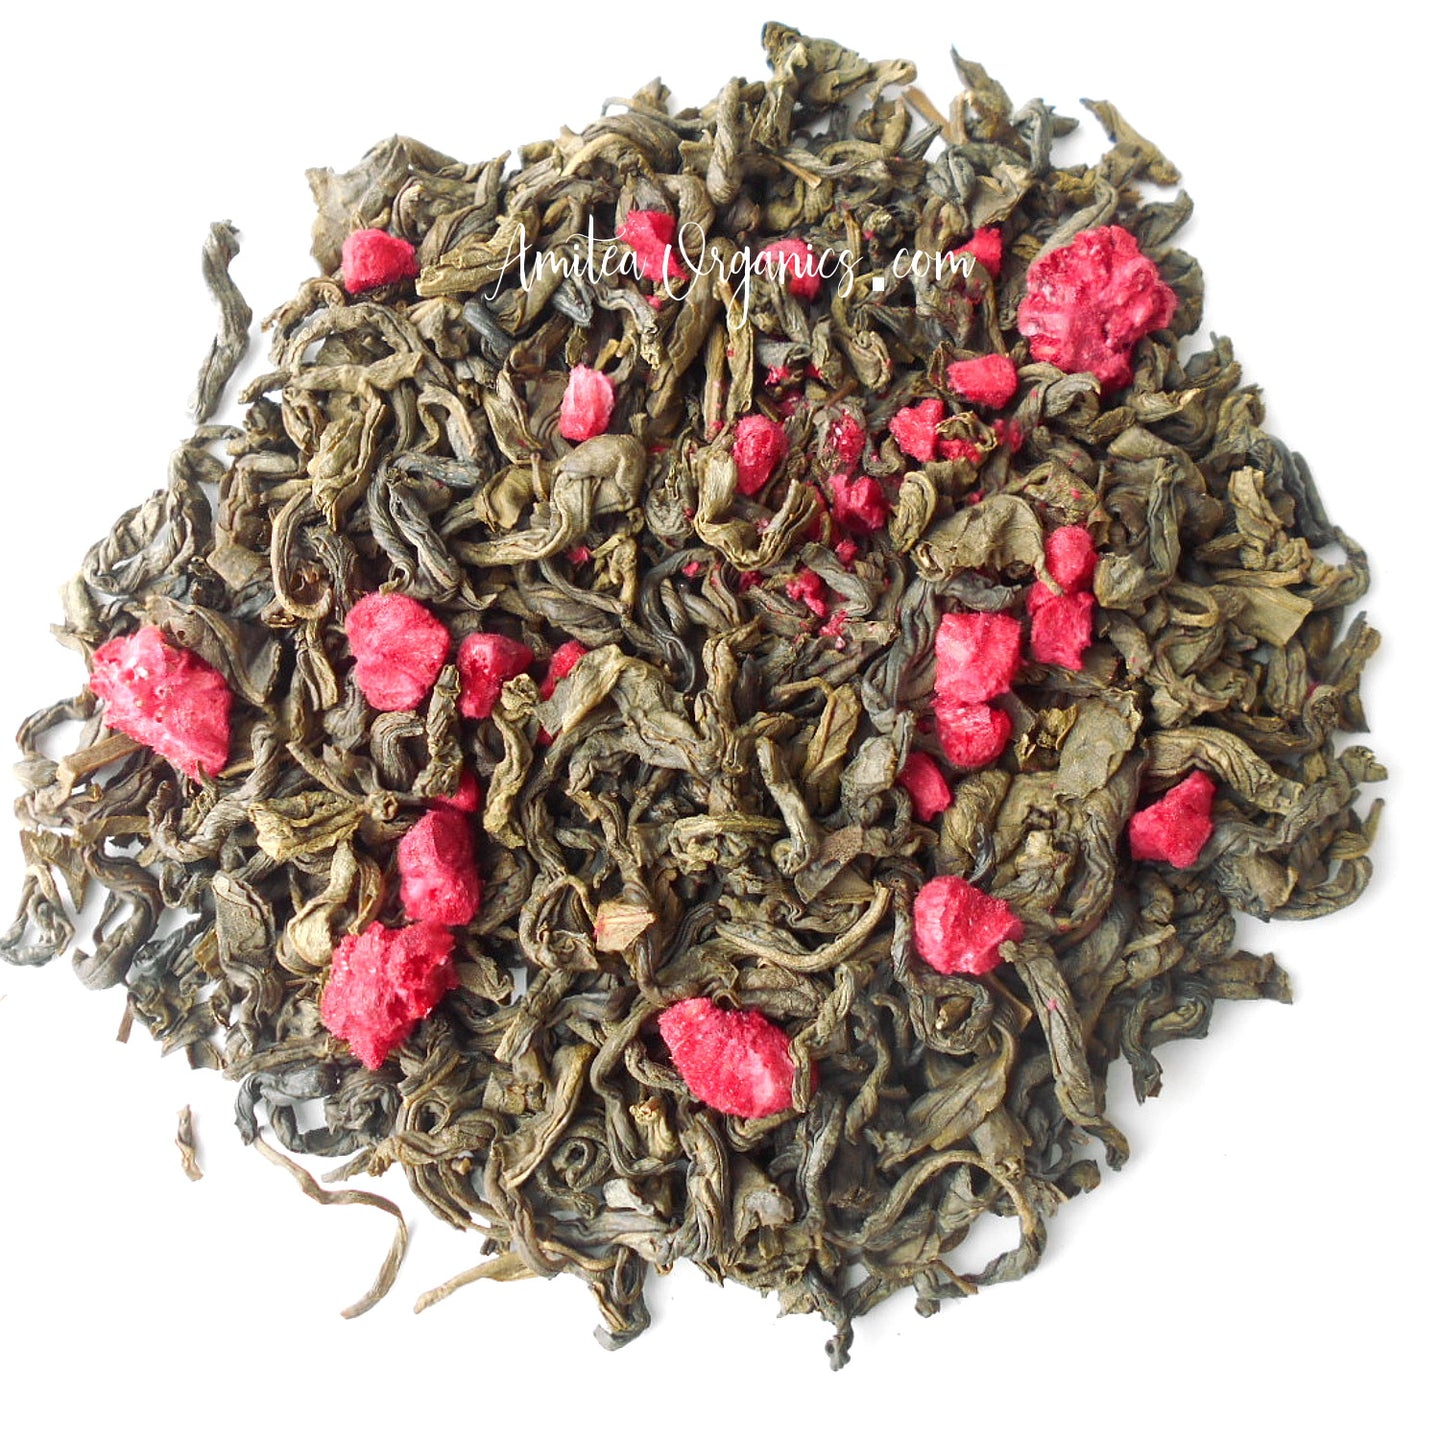 RASPBERRY DREAM organic handcrafted Green Tea | Amitea Organics